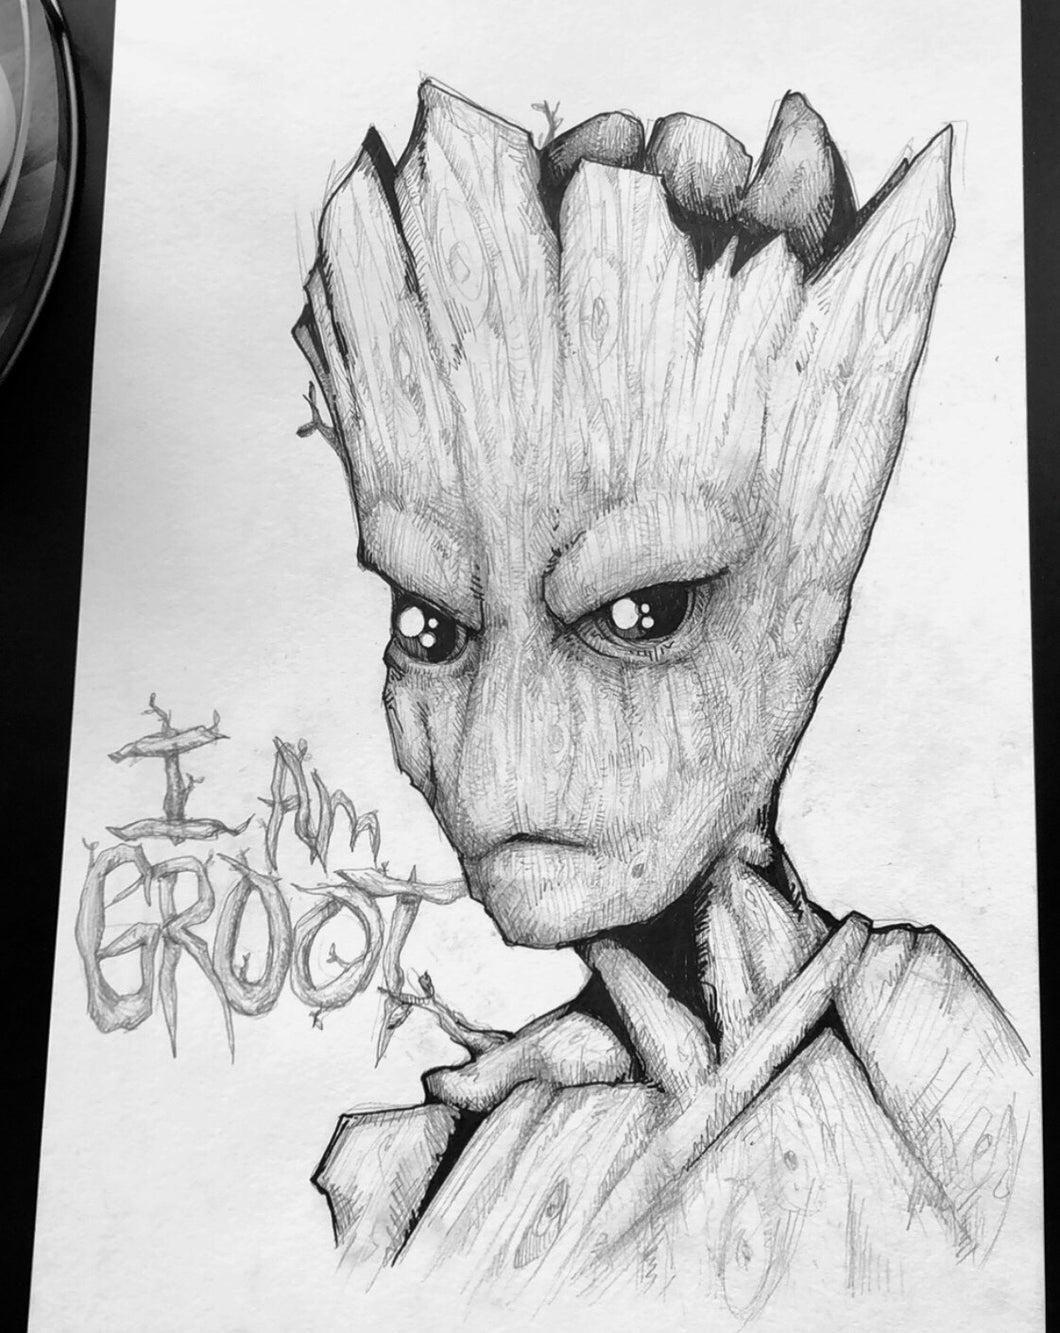 15x22 Groot Original Pen & Pencil Sketch